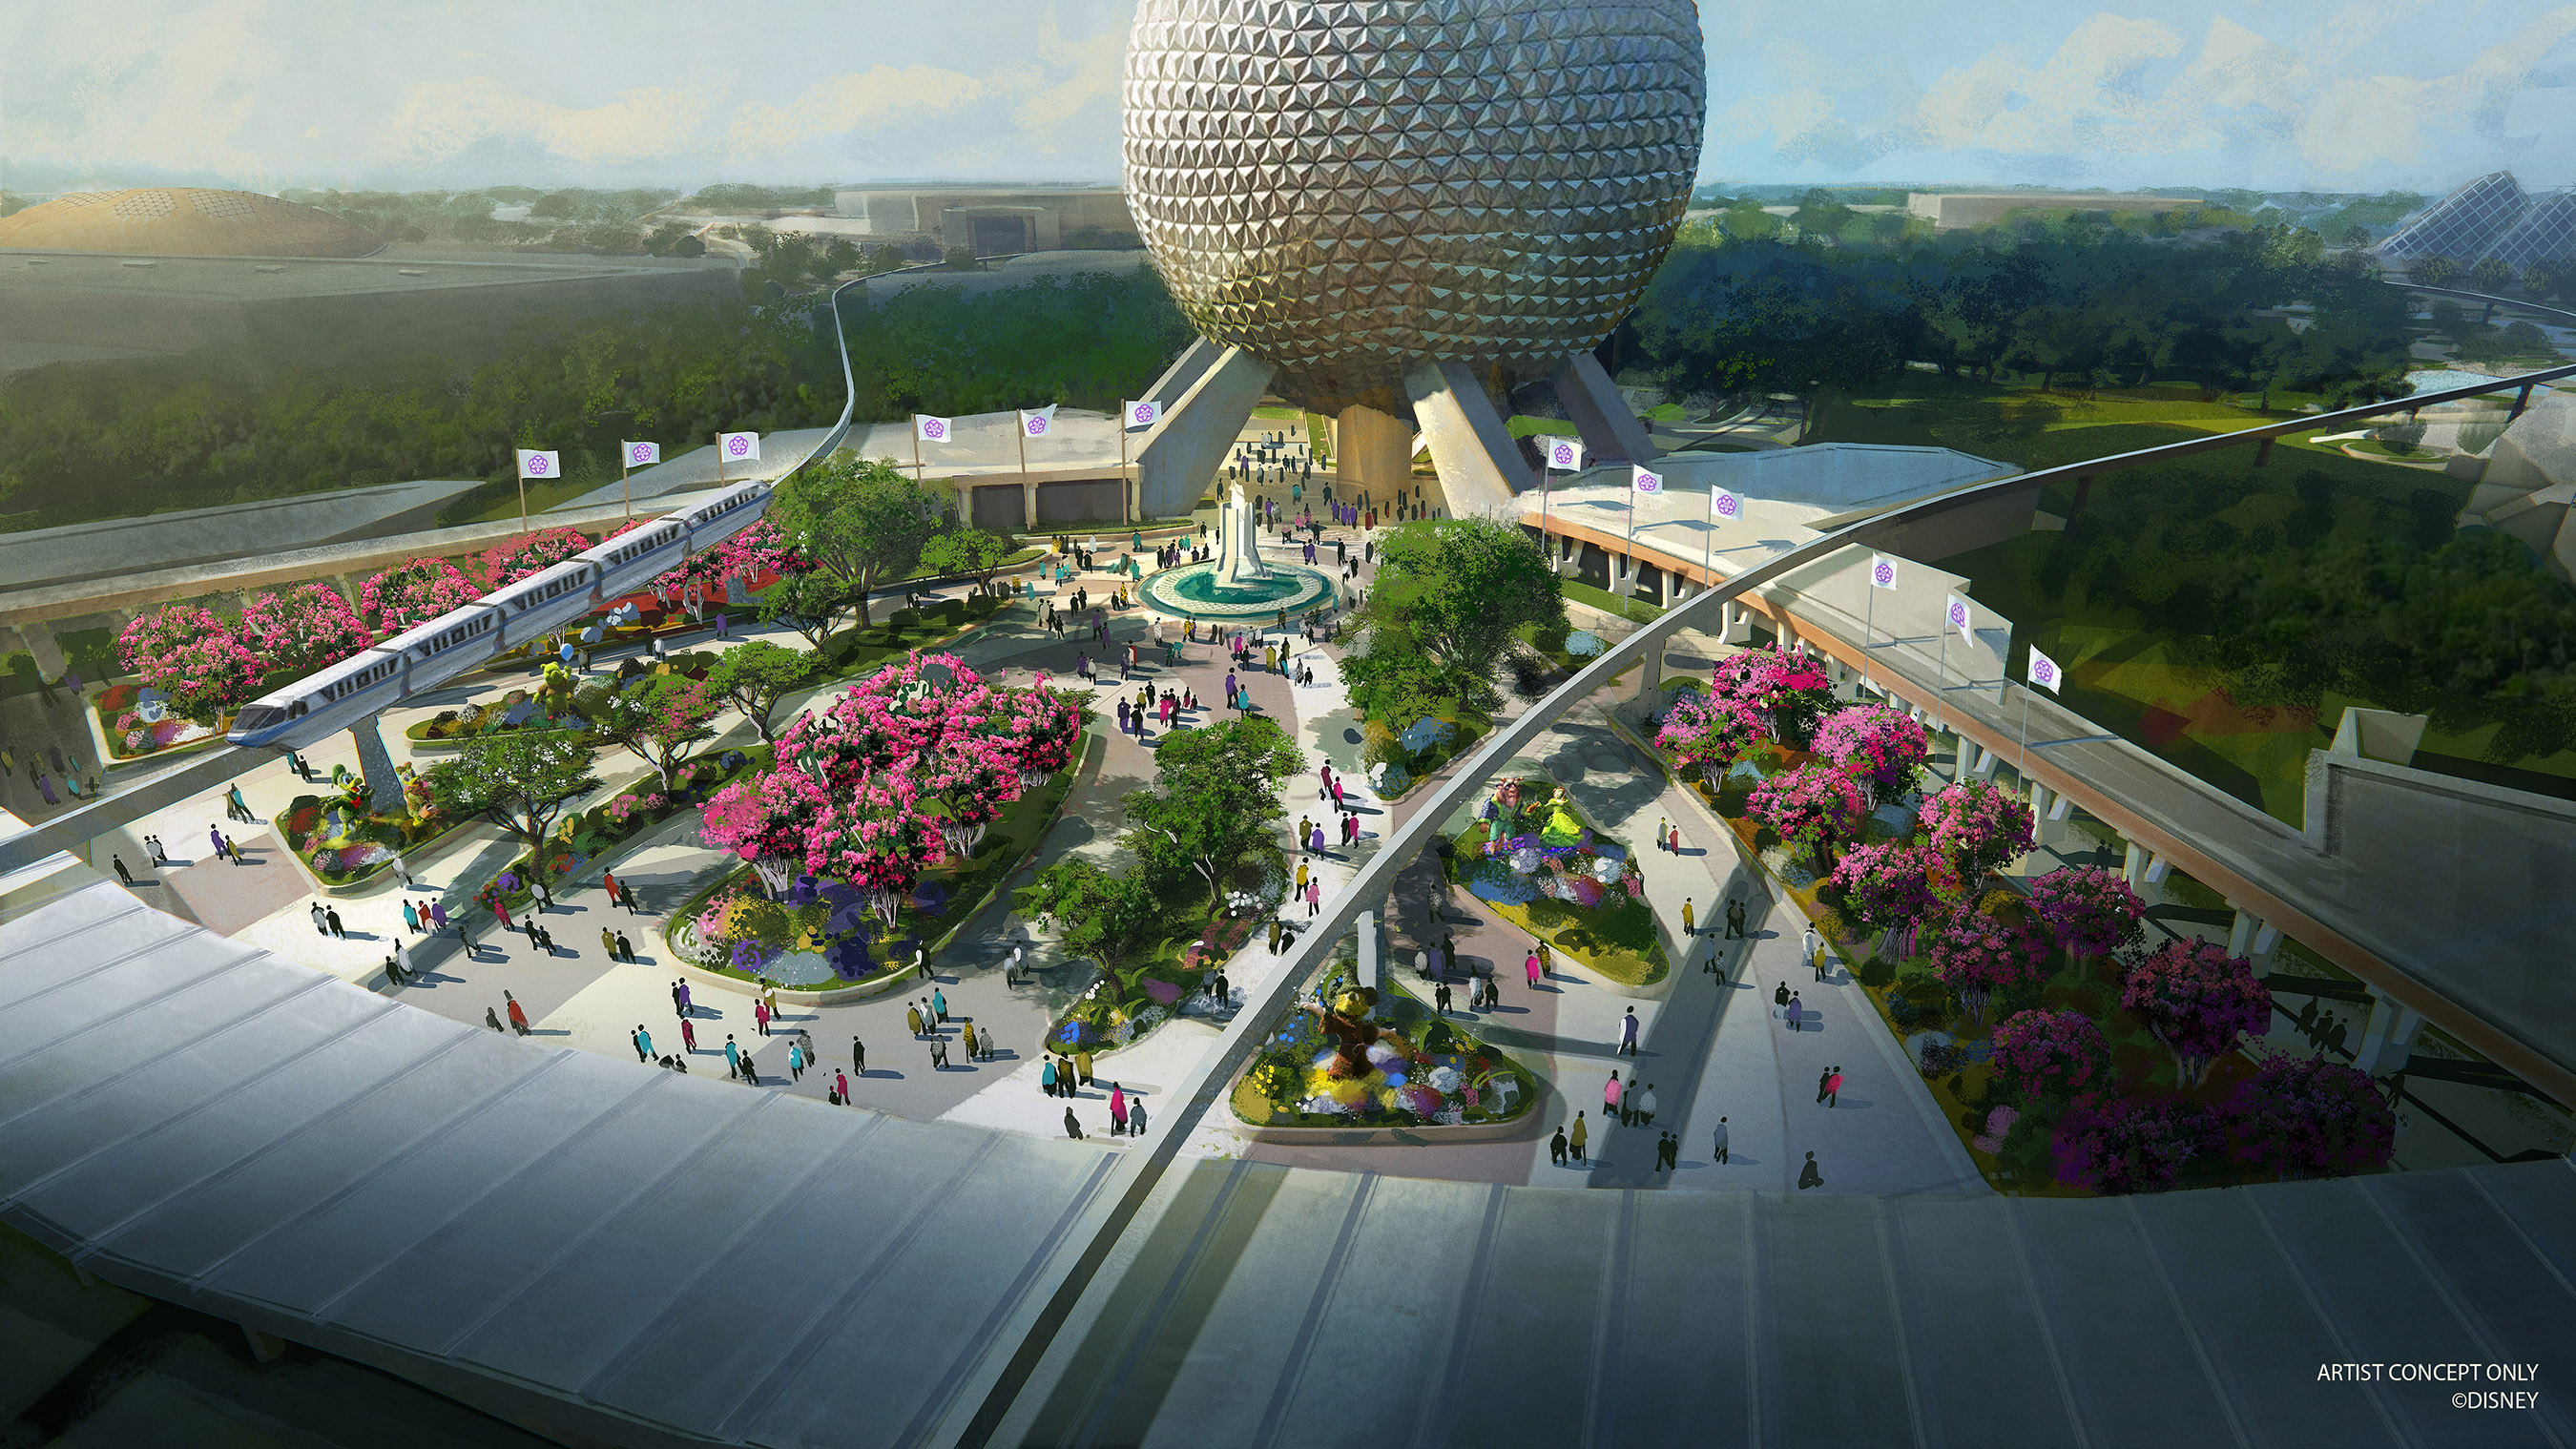 Concept art of Epcot's new entrance